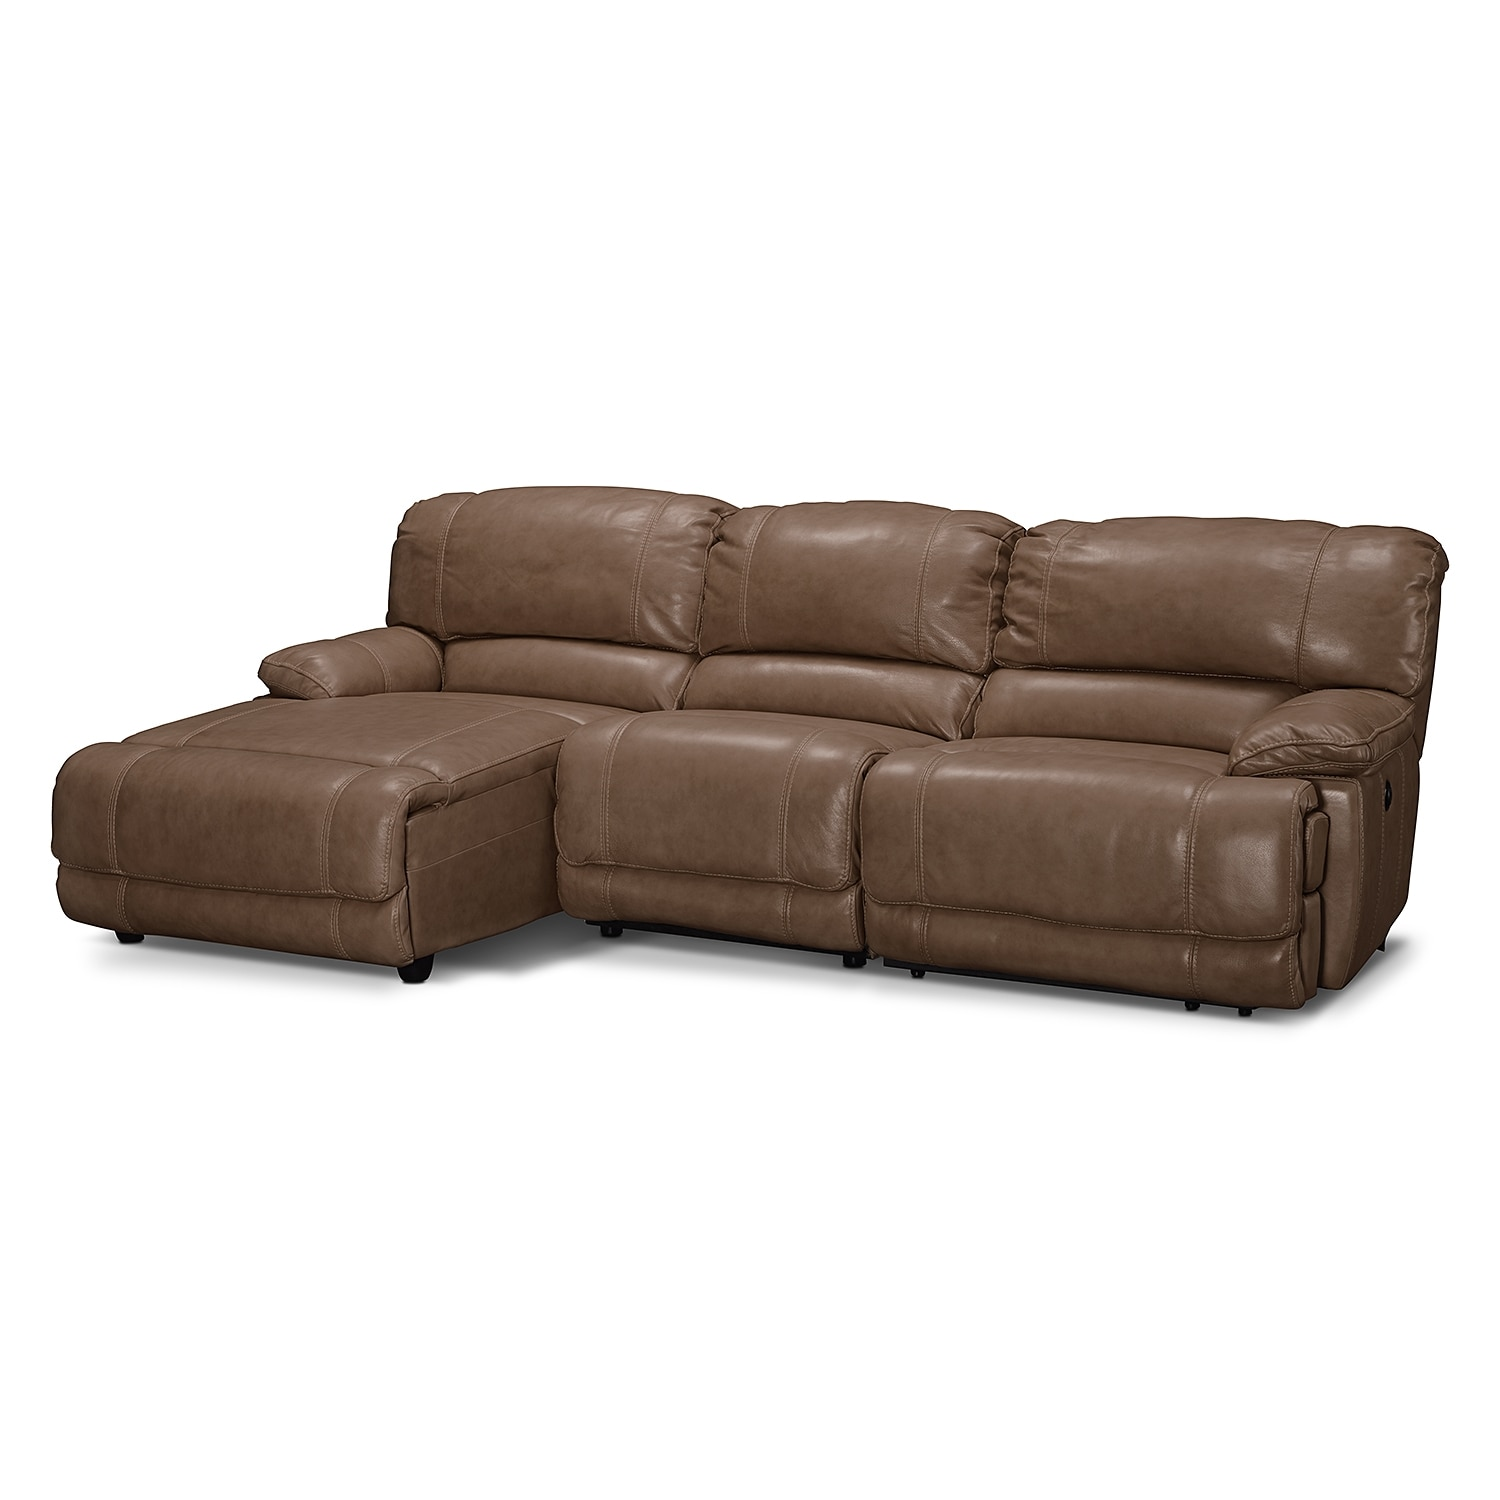 Living Room Furniture - St. Malo 3-Piece Left-Facing Power Reclining Sectional - Taupe